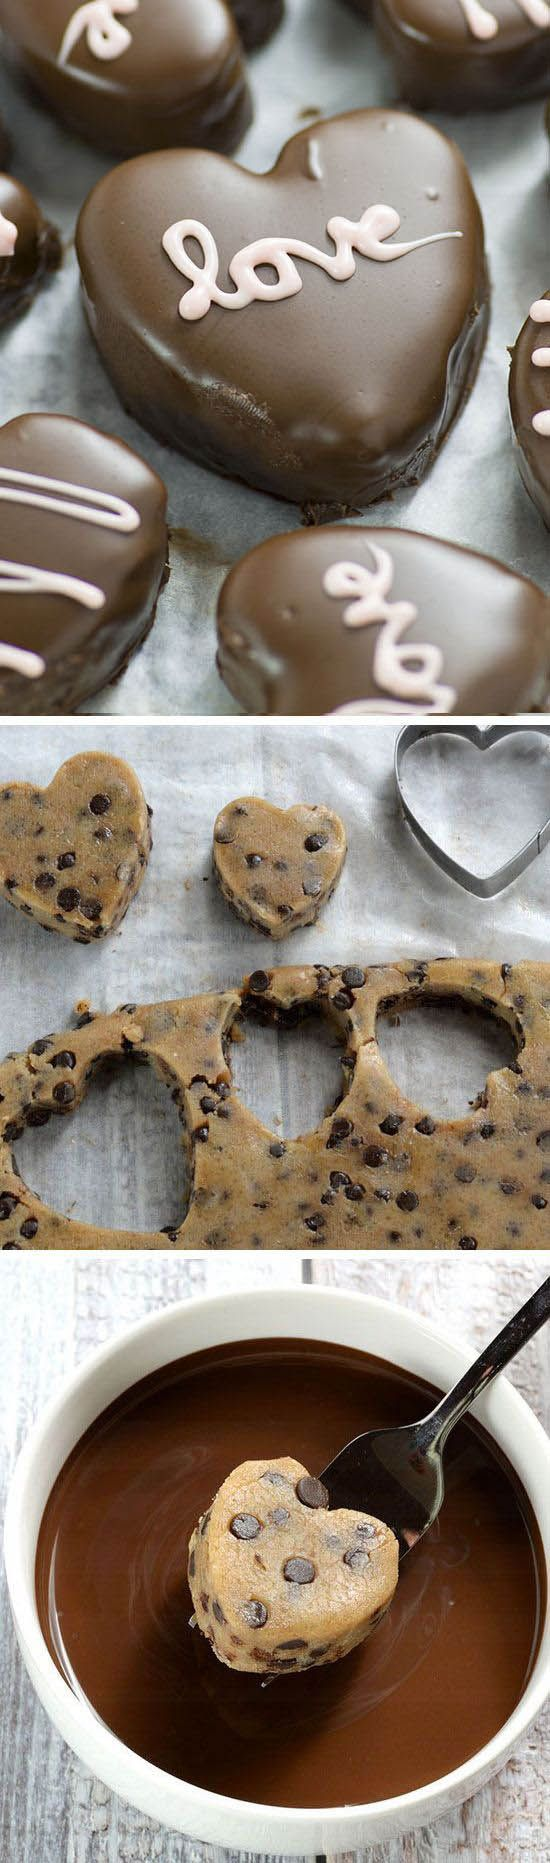 Chocolate Chip Cookie Dough Valentine's Hearts - Happy Valentines day.